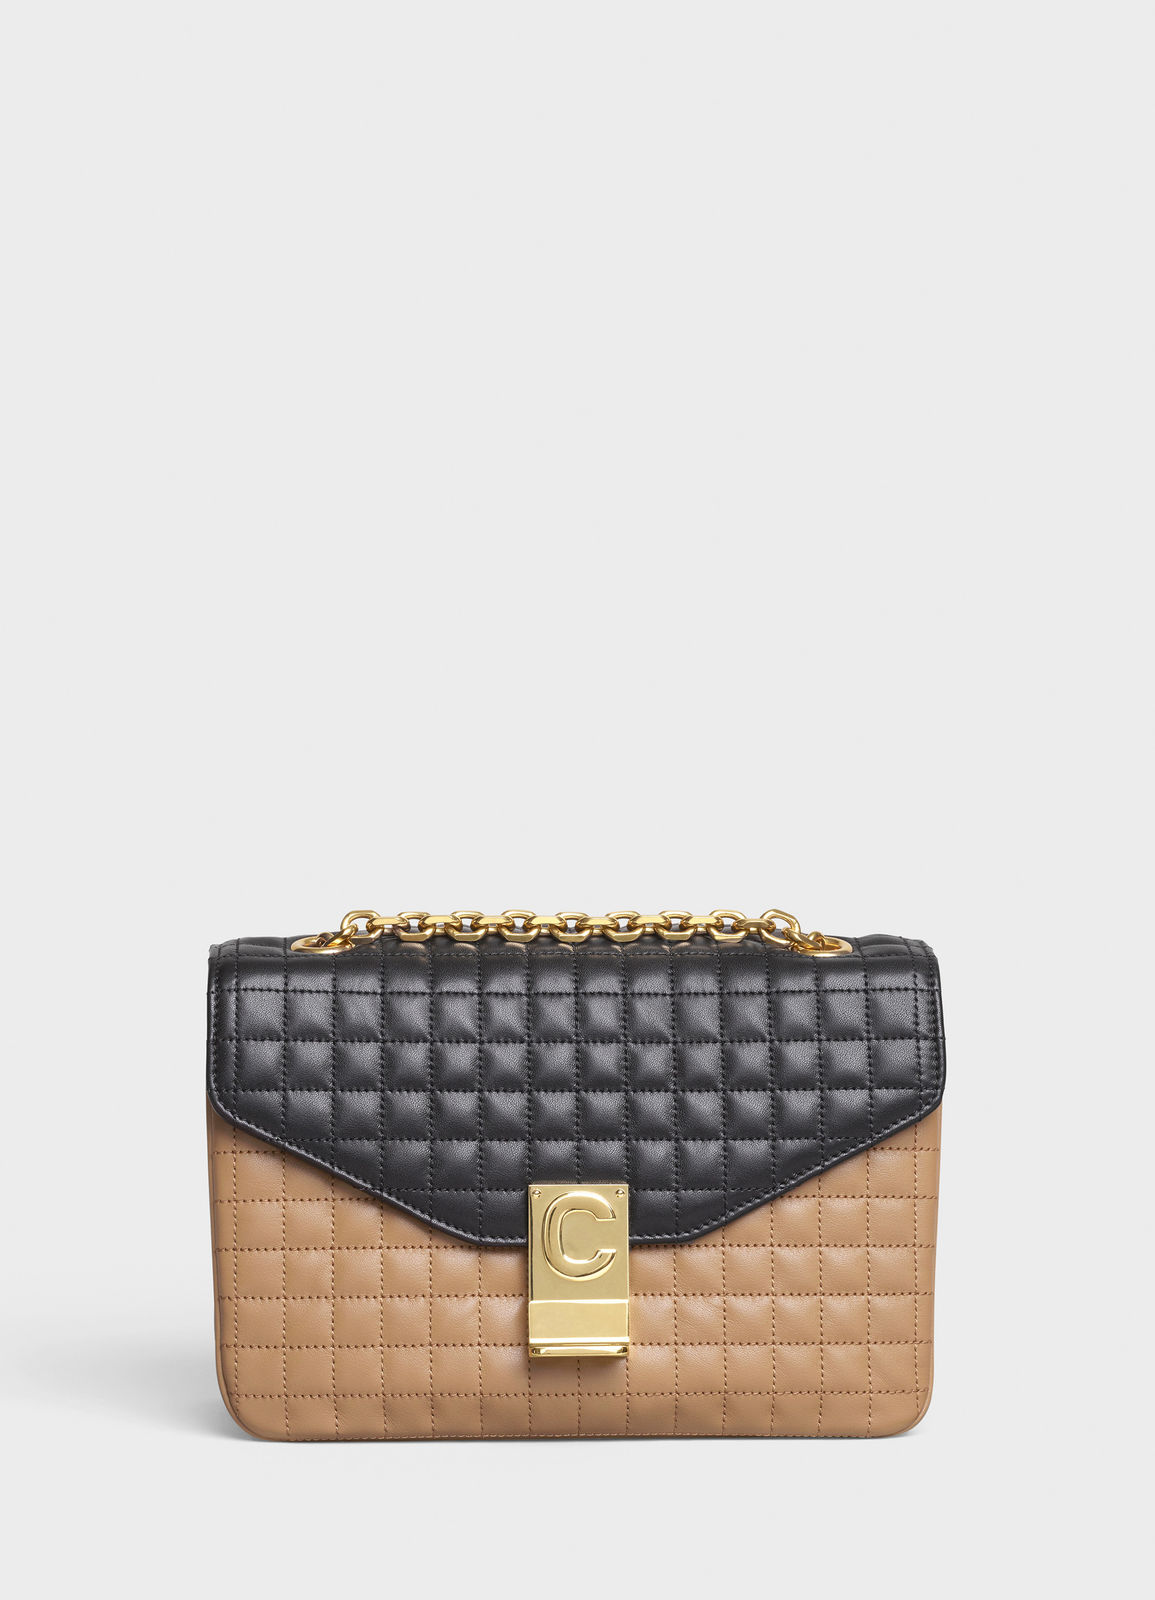 CELINE MEDIUM C BAG IN BICOLOUR QUILTED CALFSKIN CL87253 Camel&black